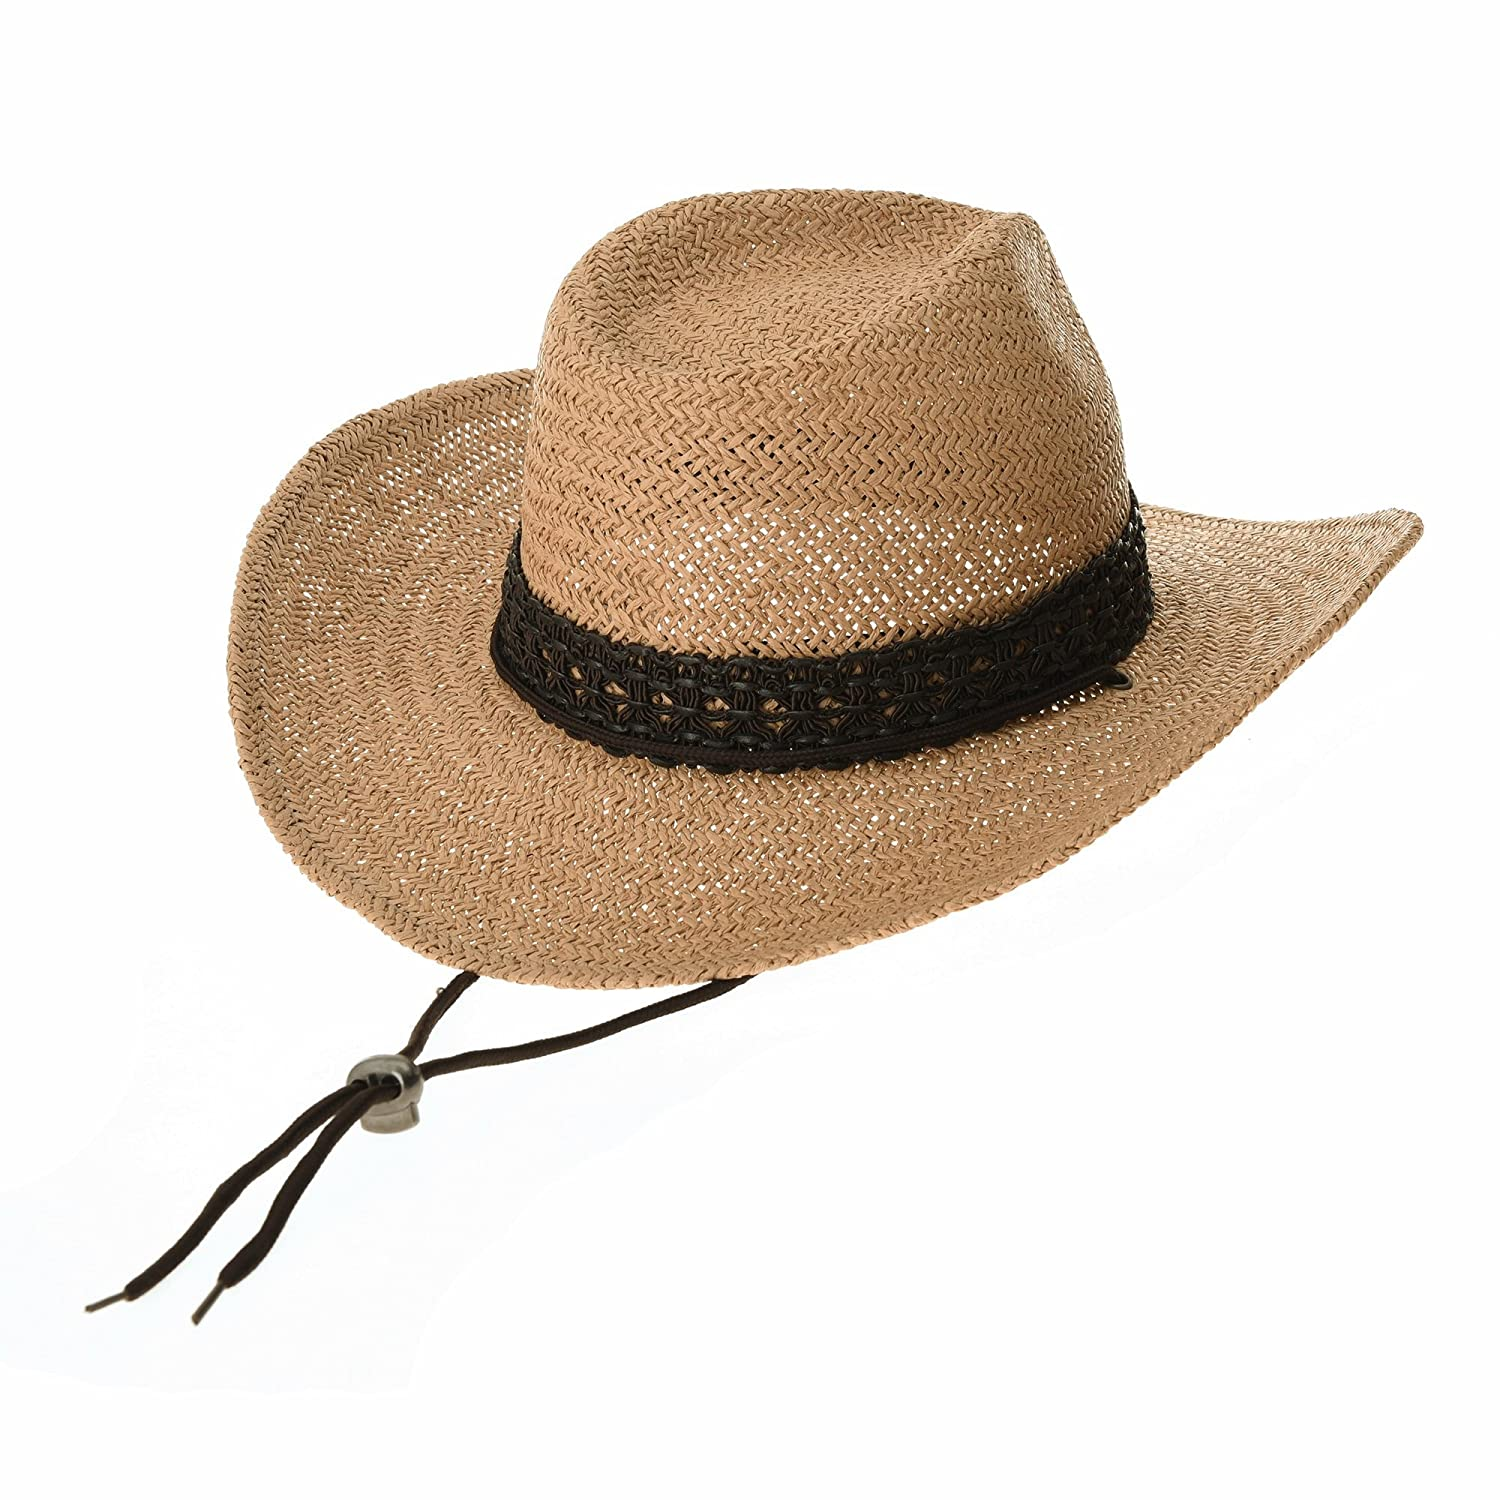 de86278c026 WITHMOONS Western Cowboy Hat Cool Paper Straw Banded Chin Strap GN8747  (Beige)  Amazon.co.uk  Clothing